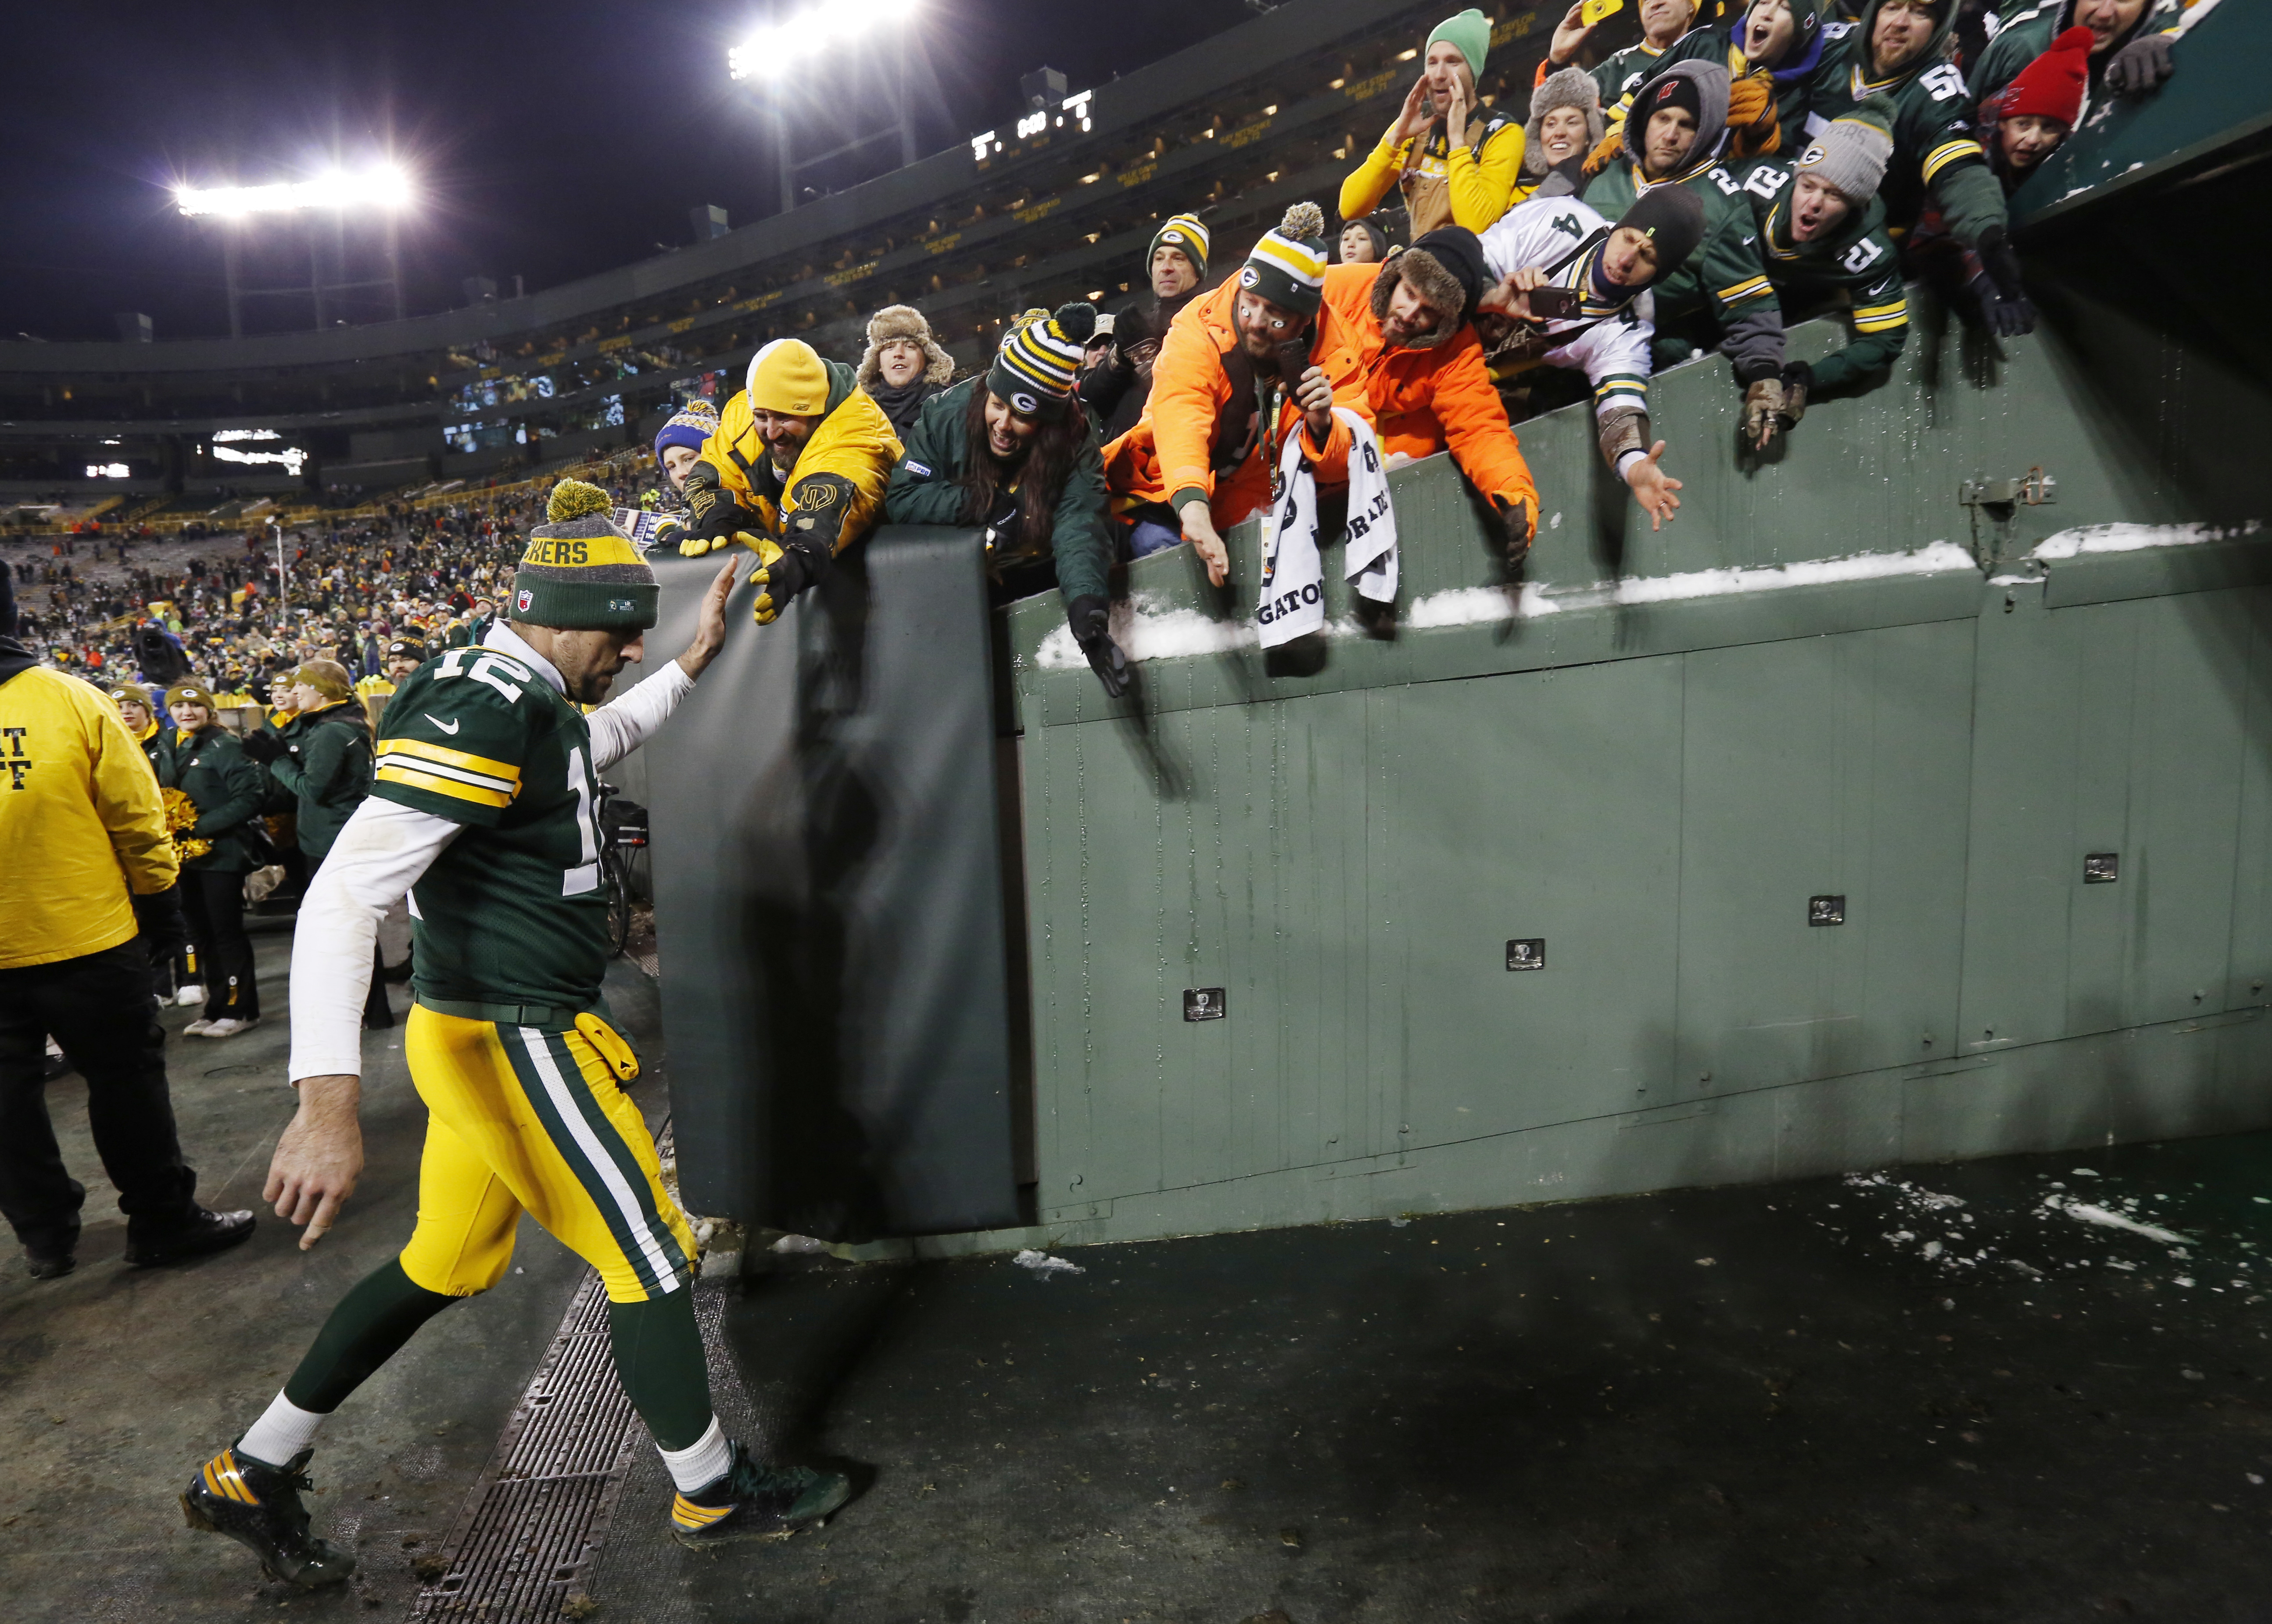 Green Bay Packers' Aaron Rodgers walks off the field after an NFL football game against the Seattle Seahawks Sunday, Dec. 11, 2016, in Green Bay, Wis. The Packers won 38-10. (AP Photo/Mike Roemer)